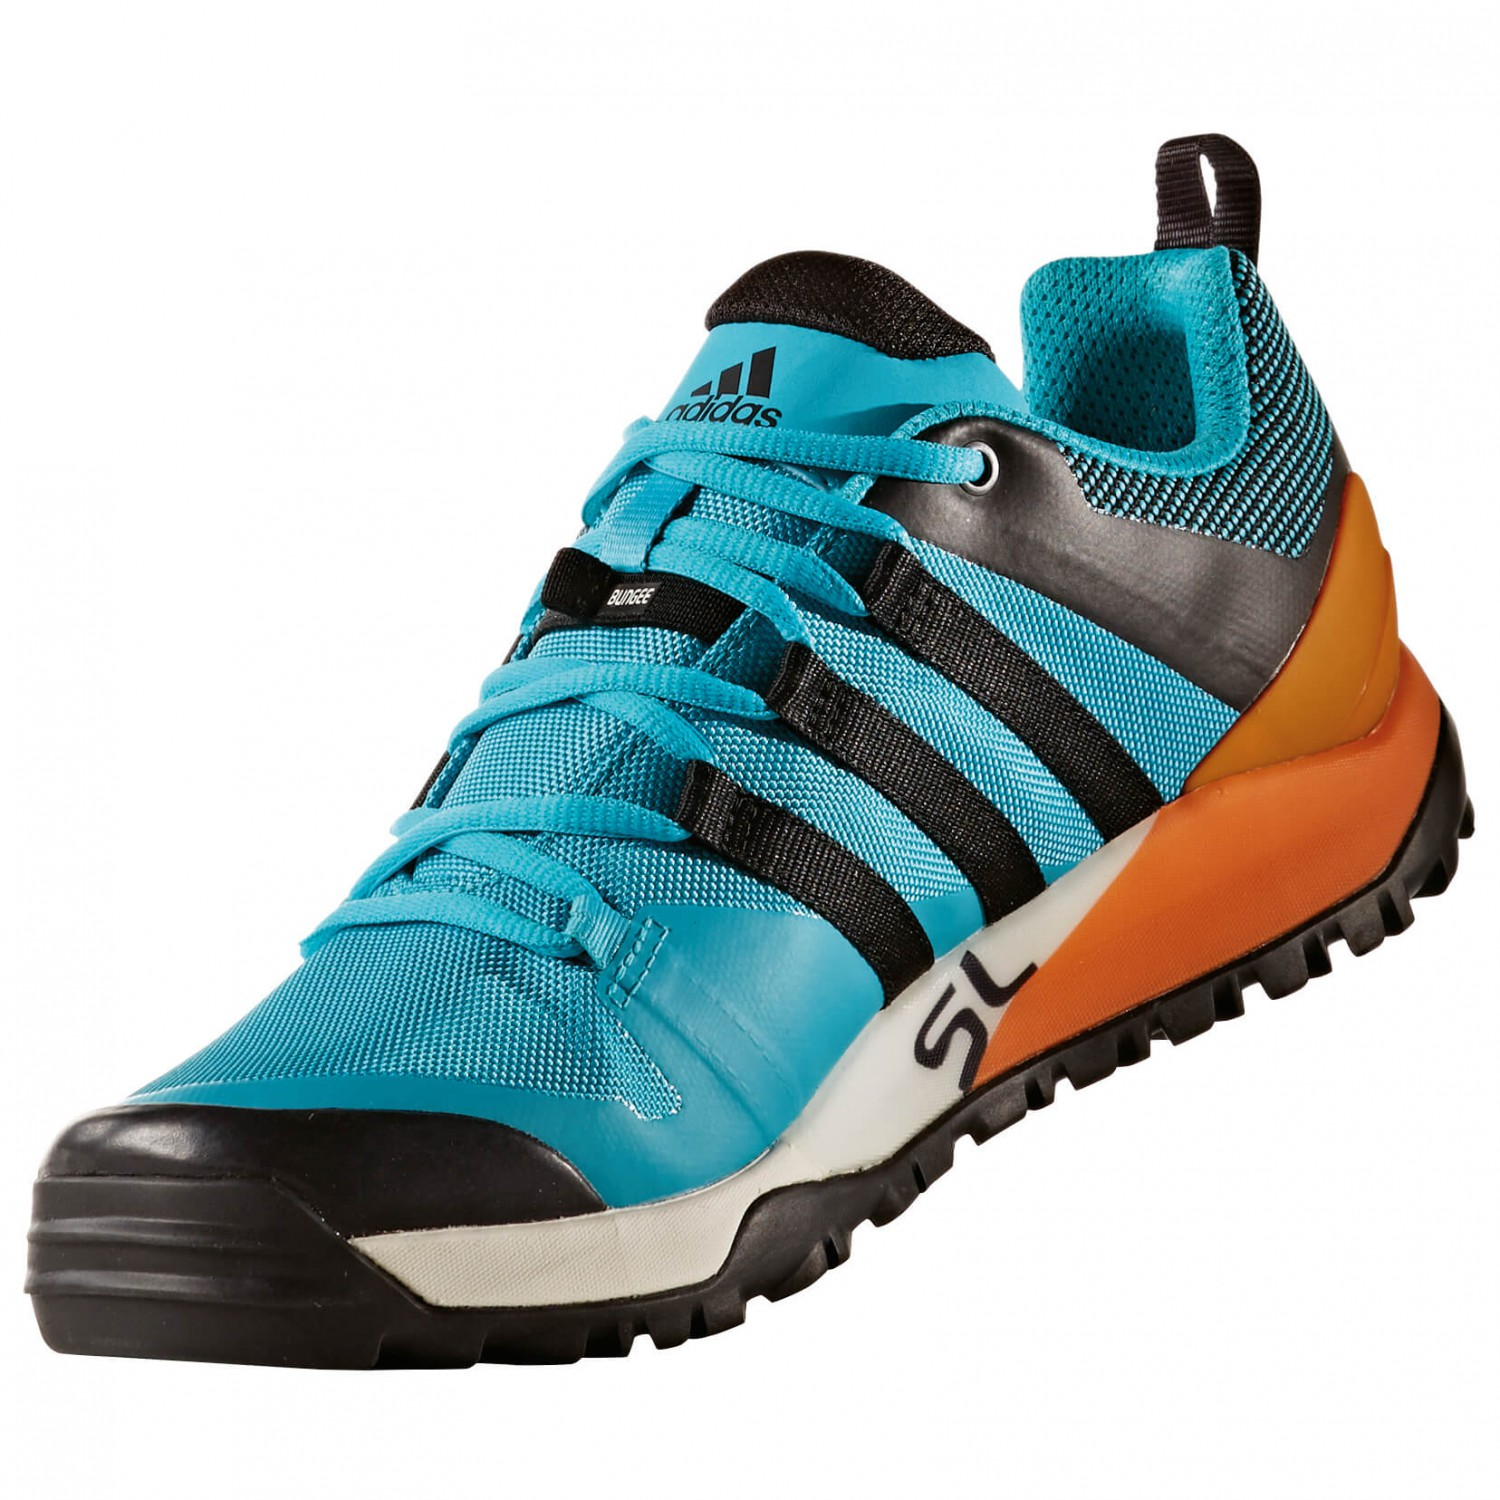 adidas terrex trail cross sl shoes